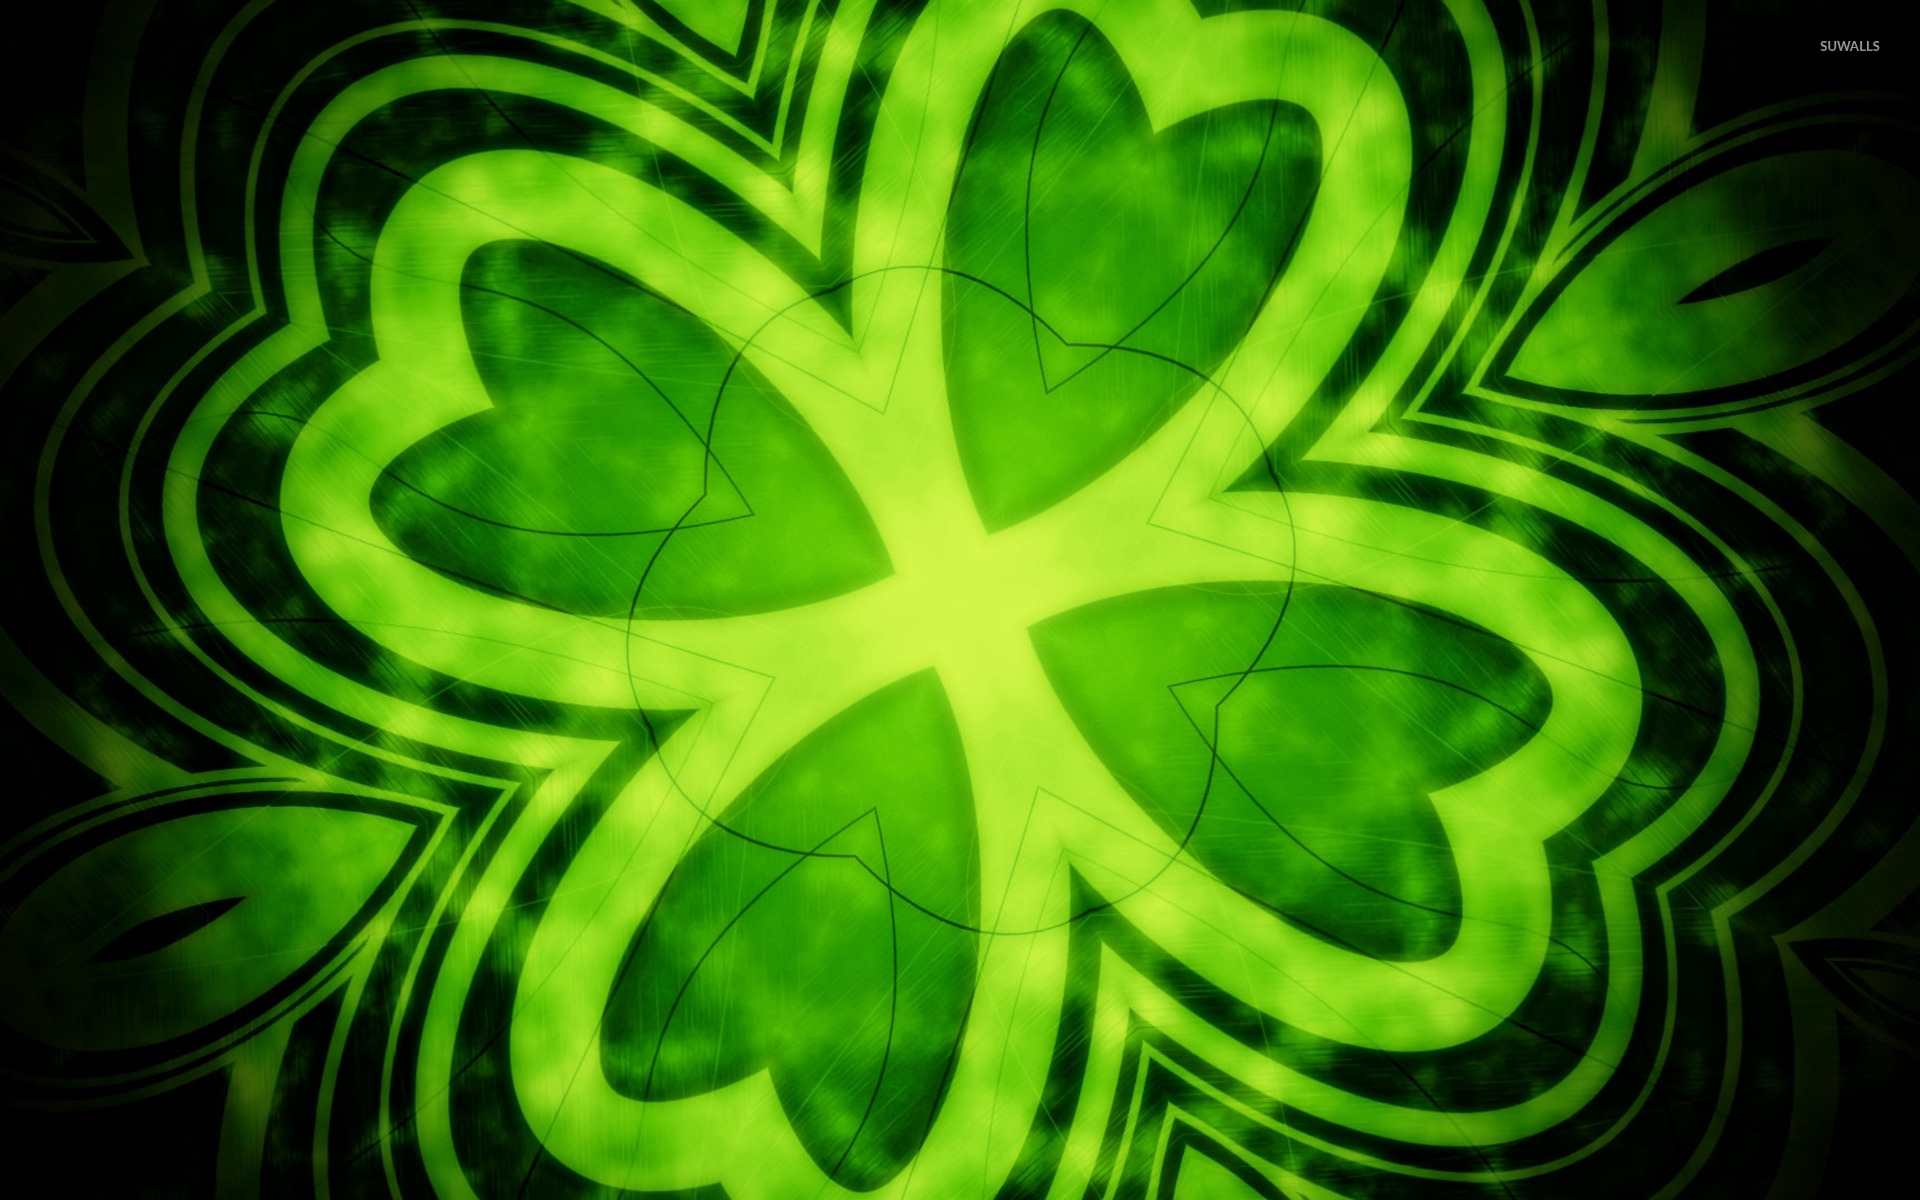 Four leaf clover wallpaper   Abstract wallpapers   14202 1680x1050